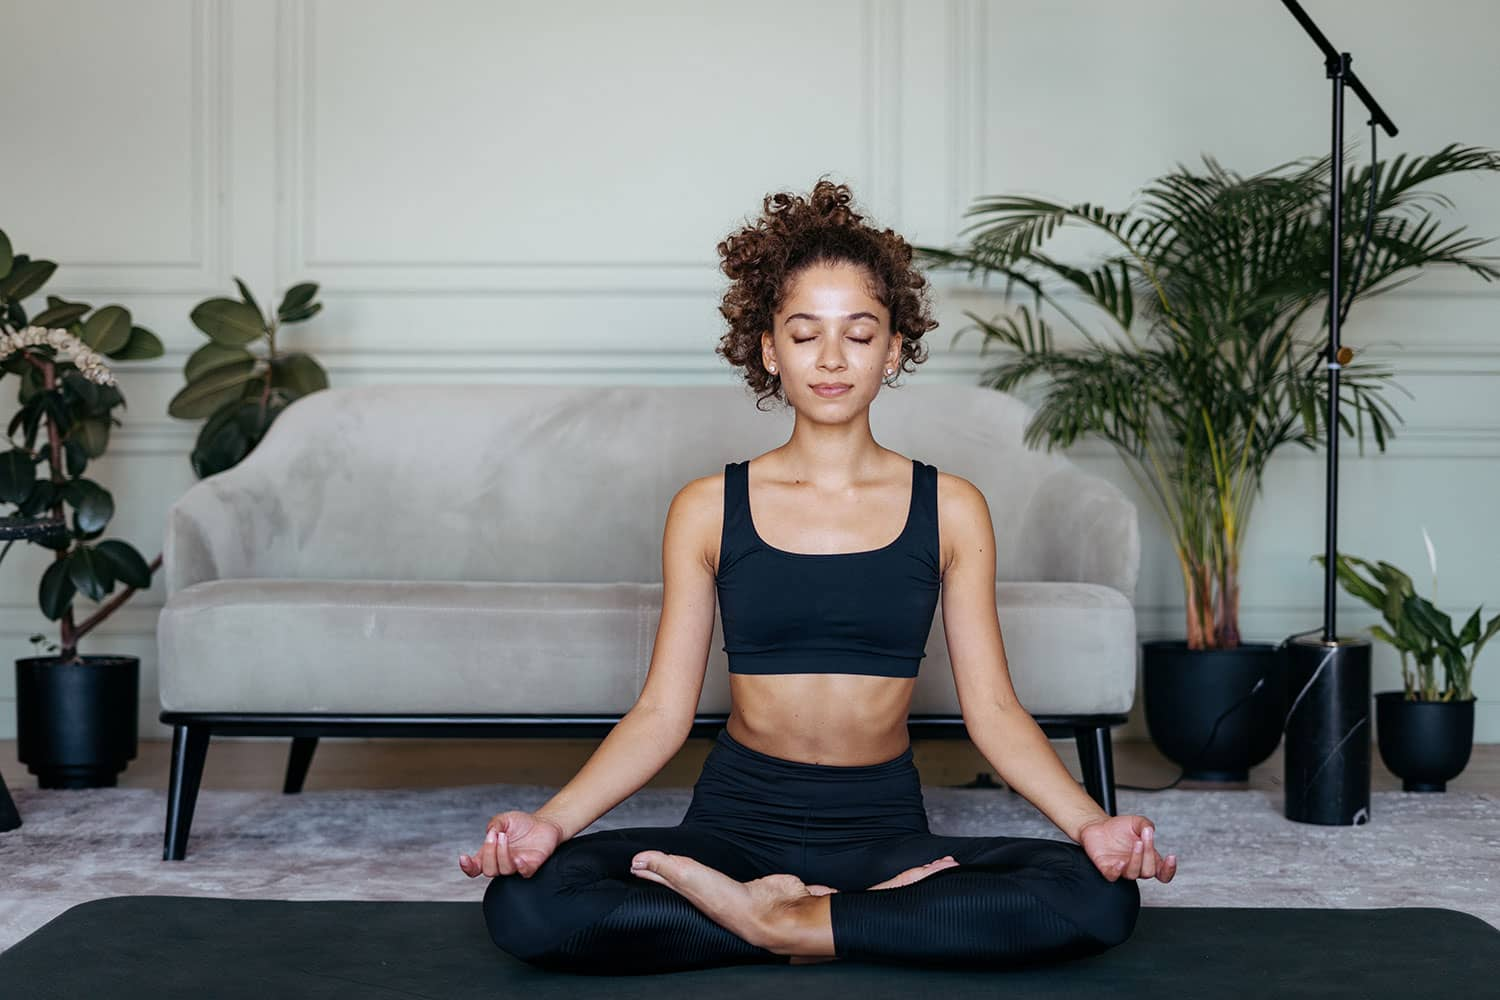 A Step-by-Step Guide to Creating Your Own Meditation Space